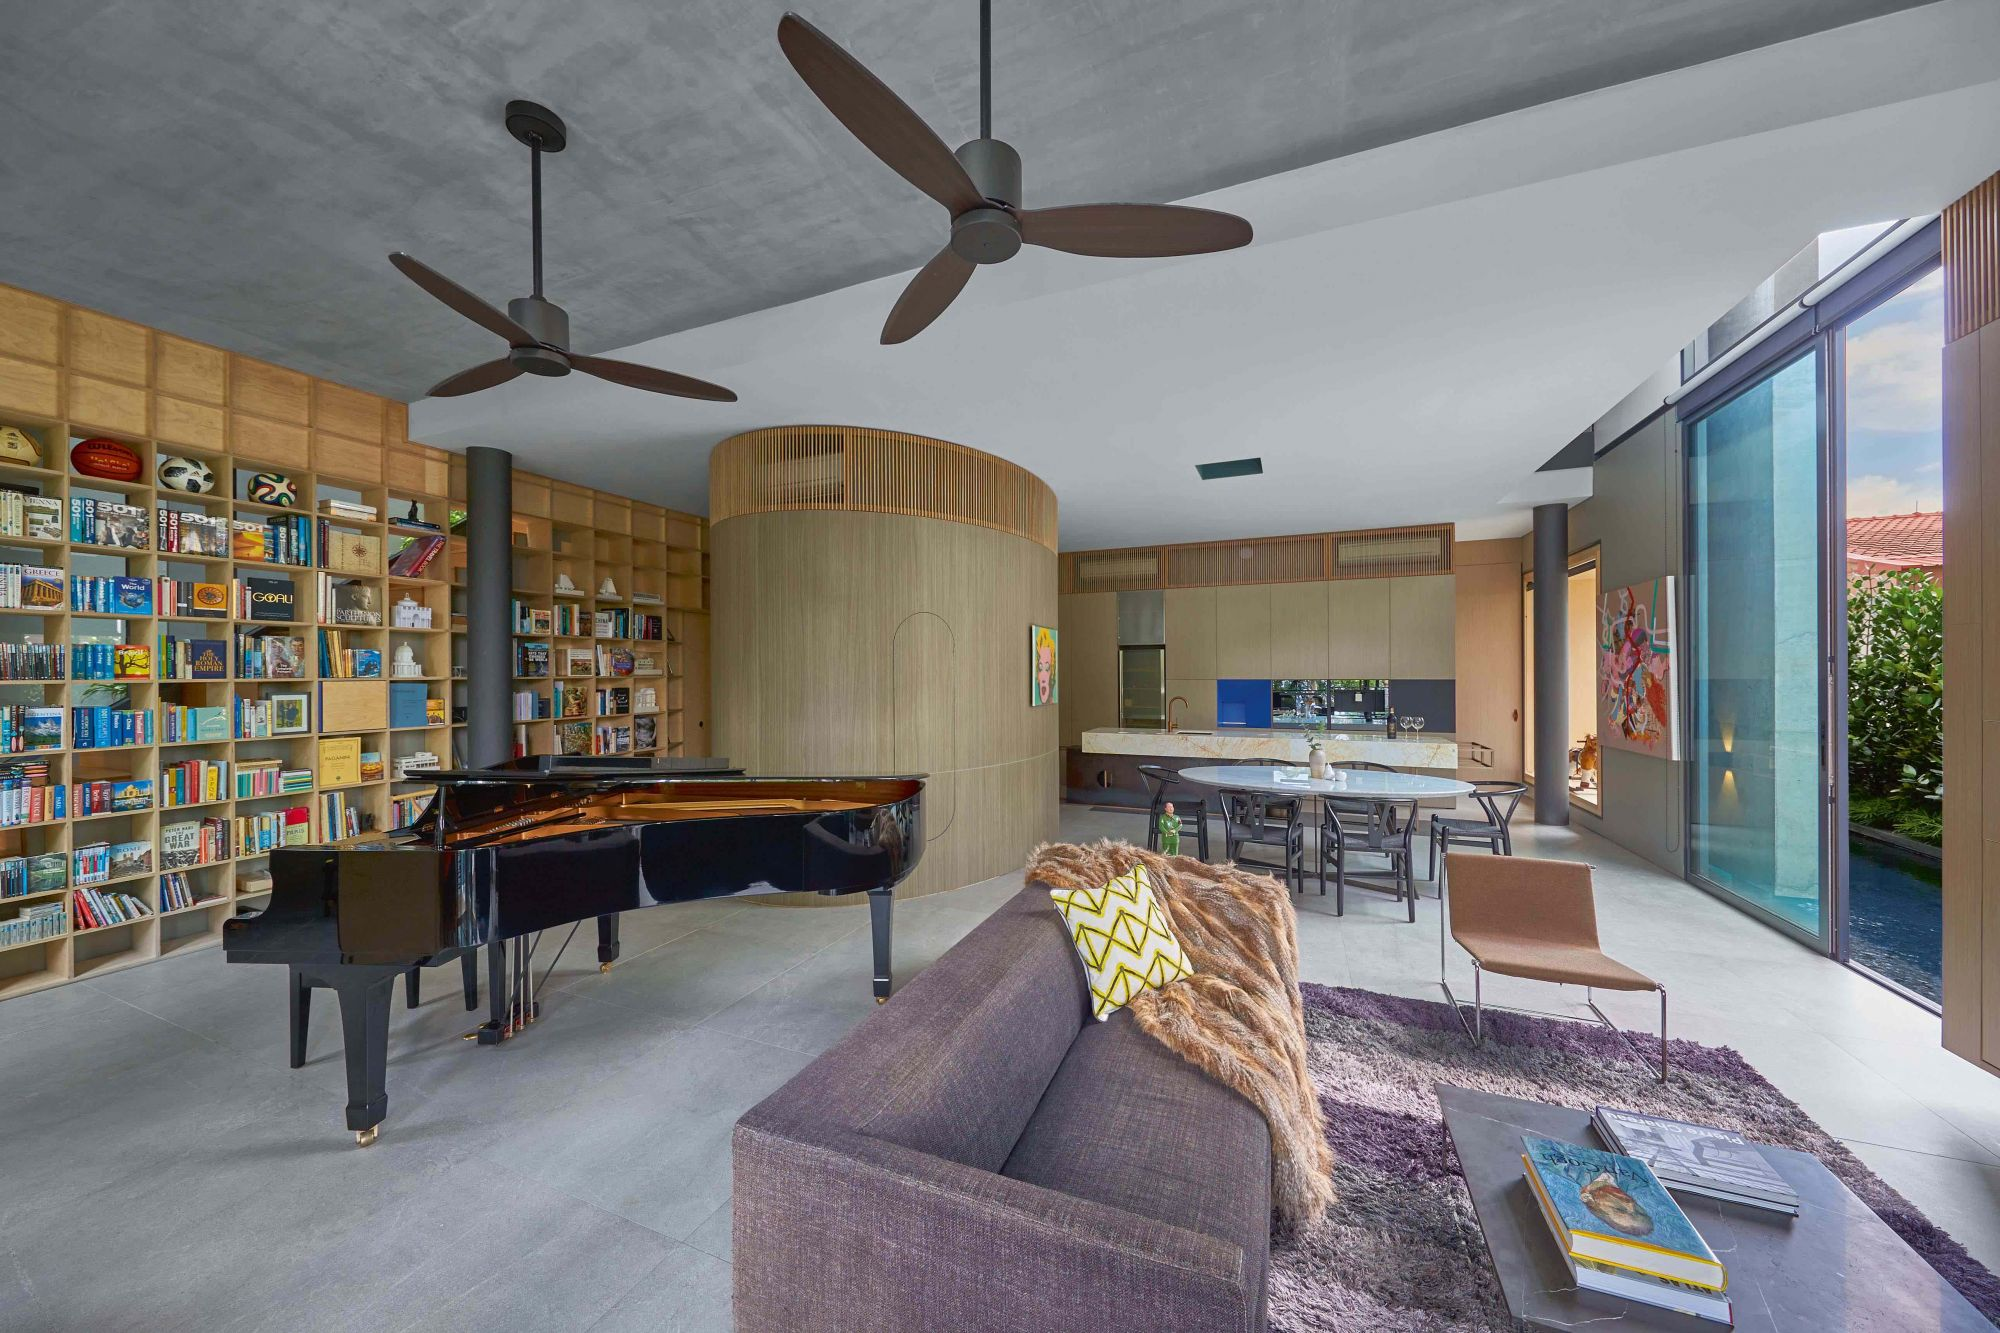 Home Tour: How a Singapore Architect's New House Became a Space For Creative Experiments